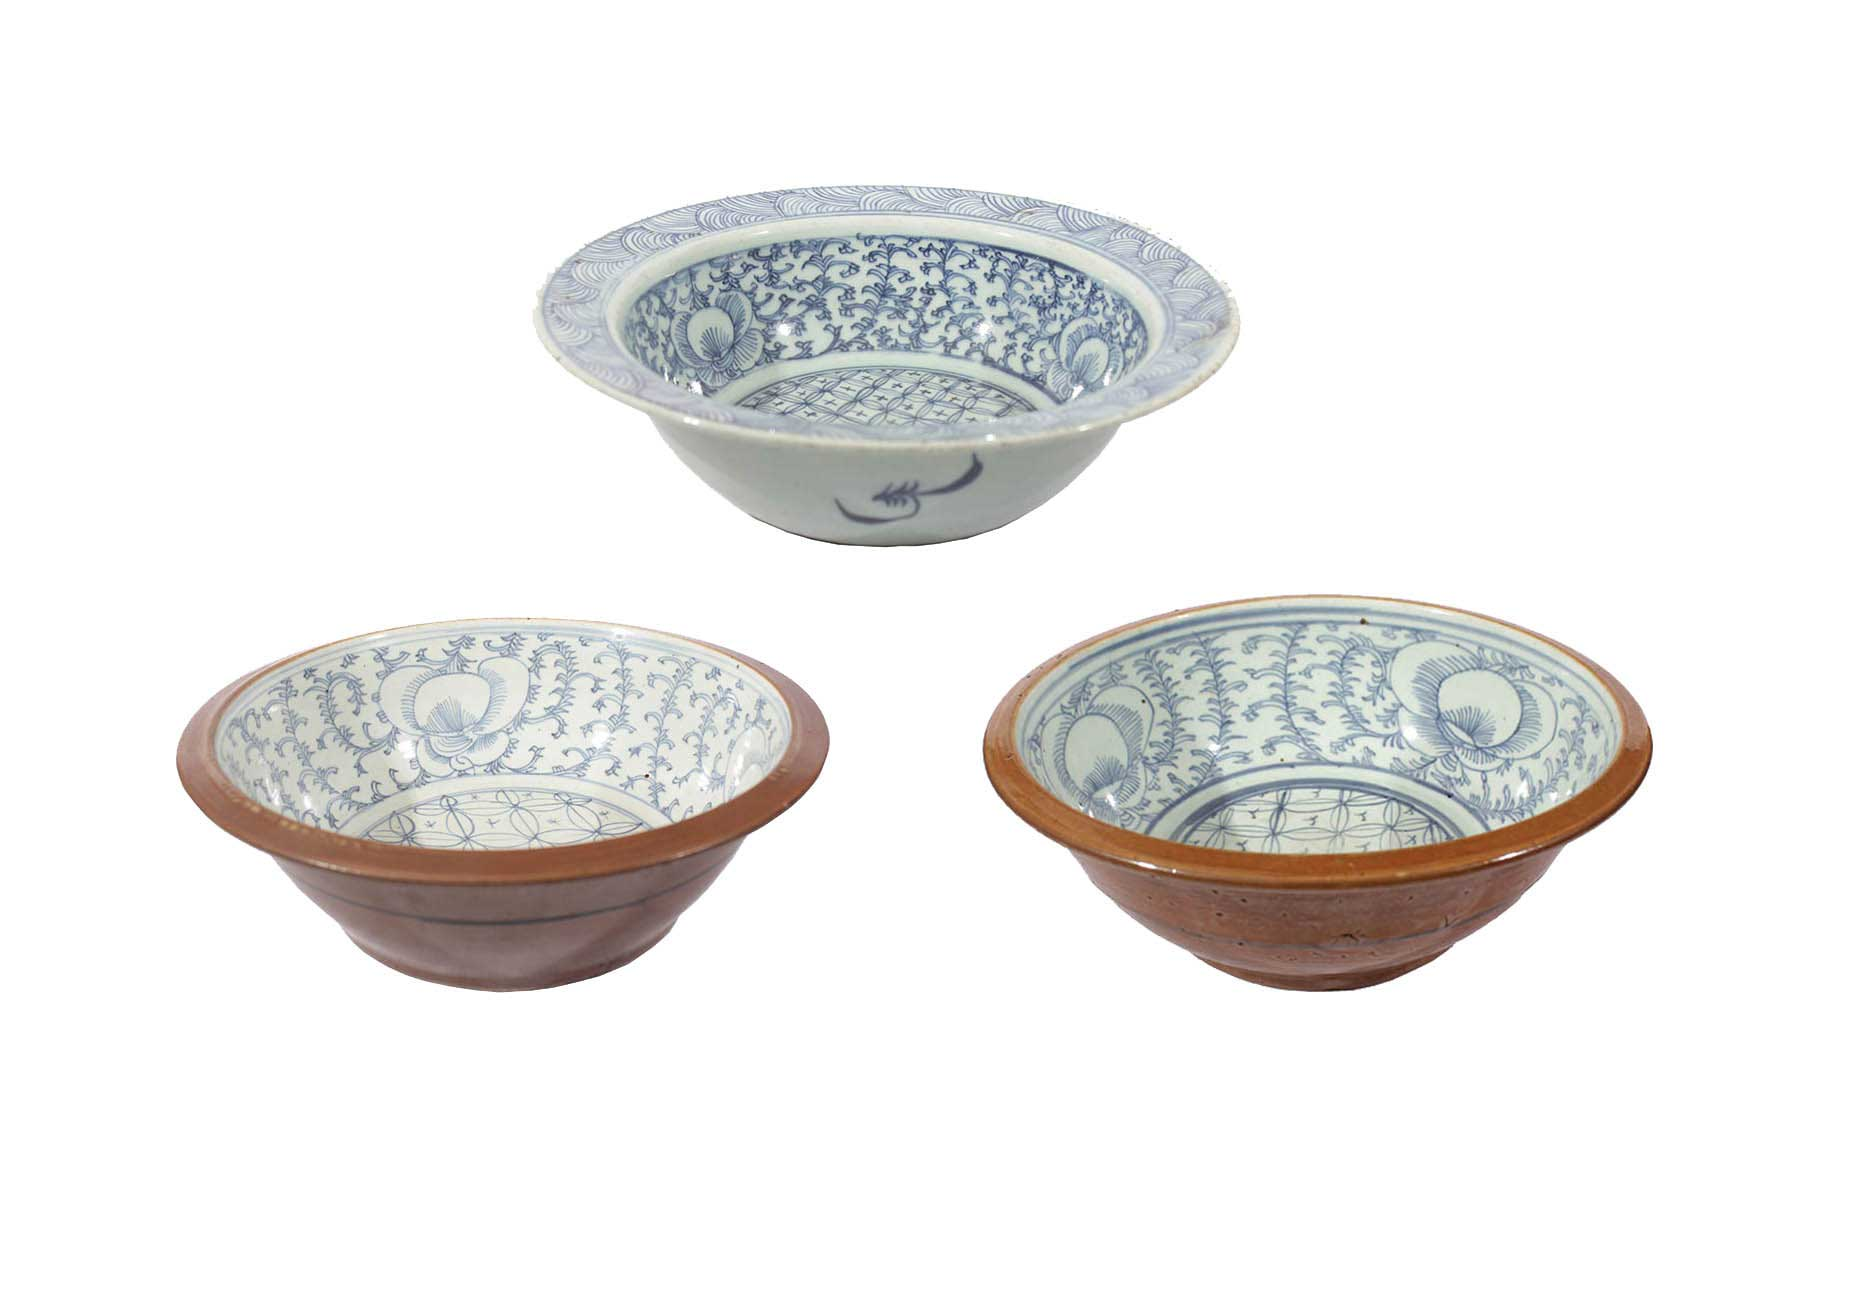 Three 19th century Late Qing blue and white basin